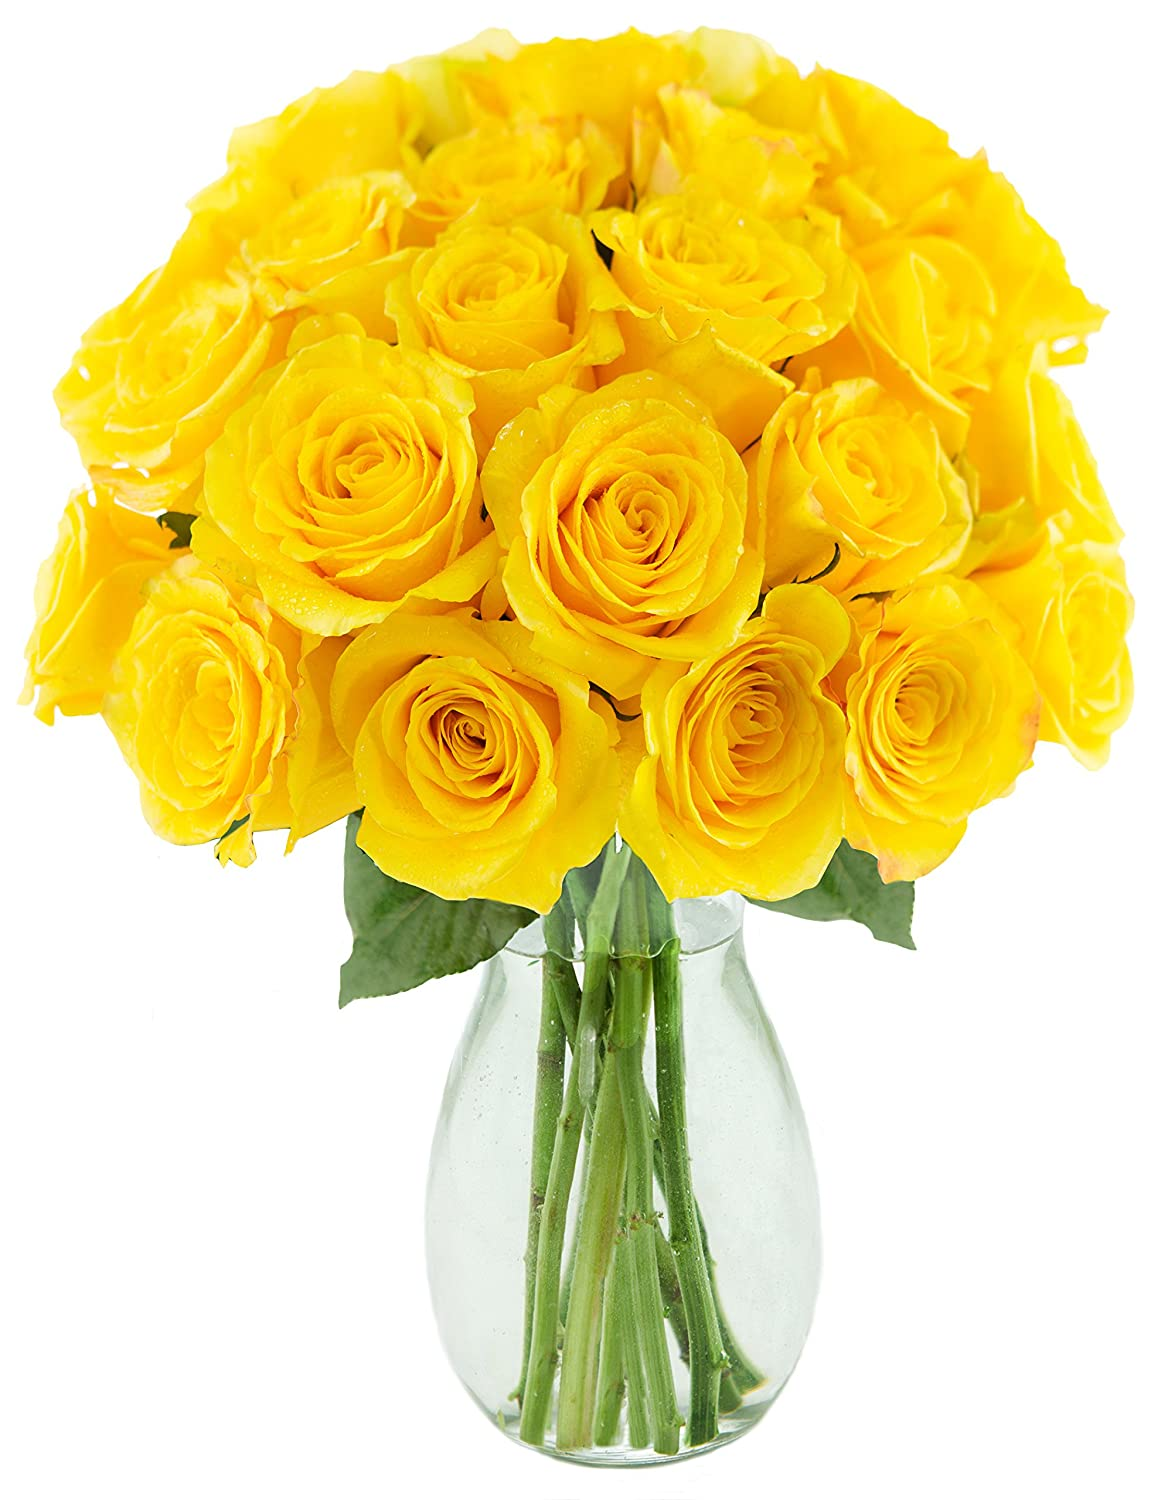 Kabloom Collection Two Dozen Always On My Life Yellow Roses Flowers with Vase, 2.5 Pound